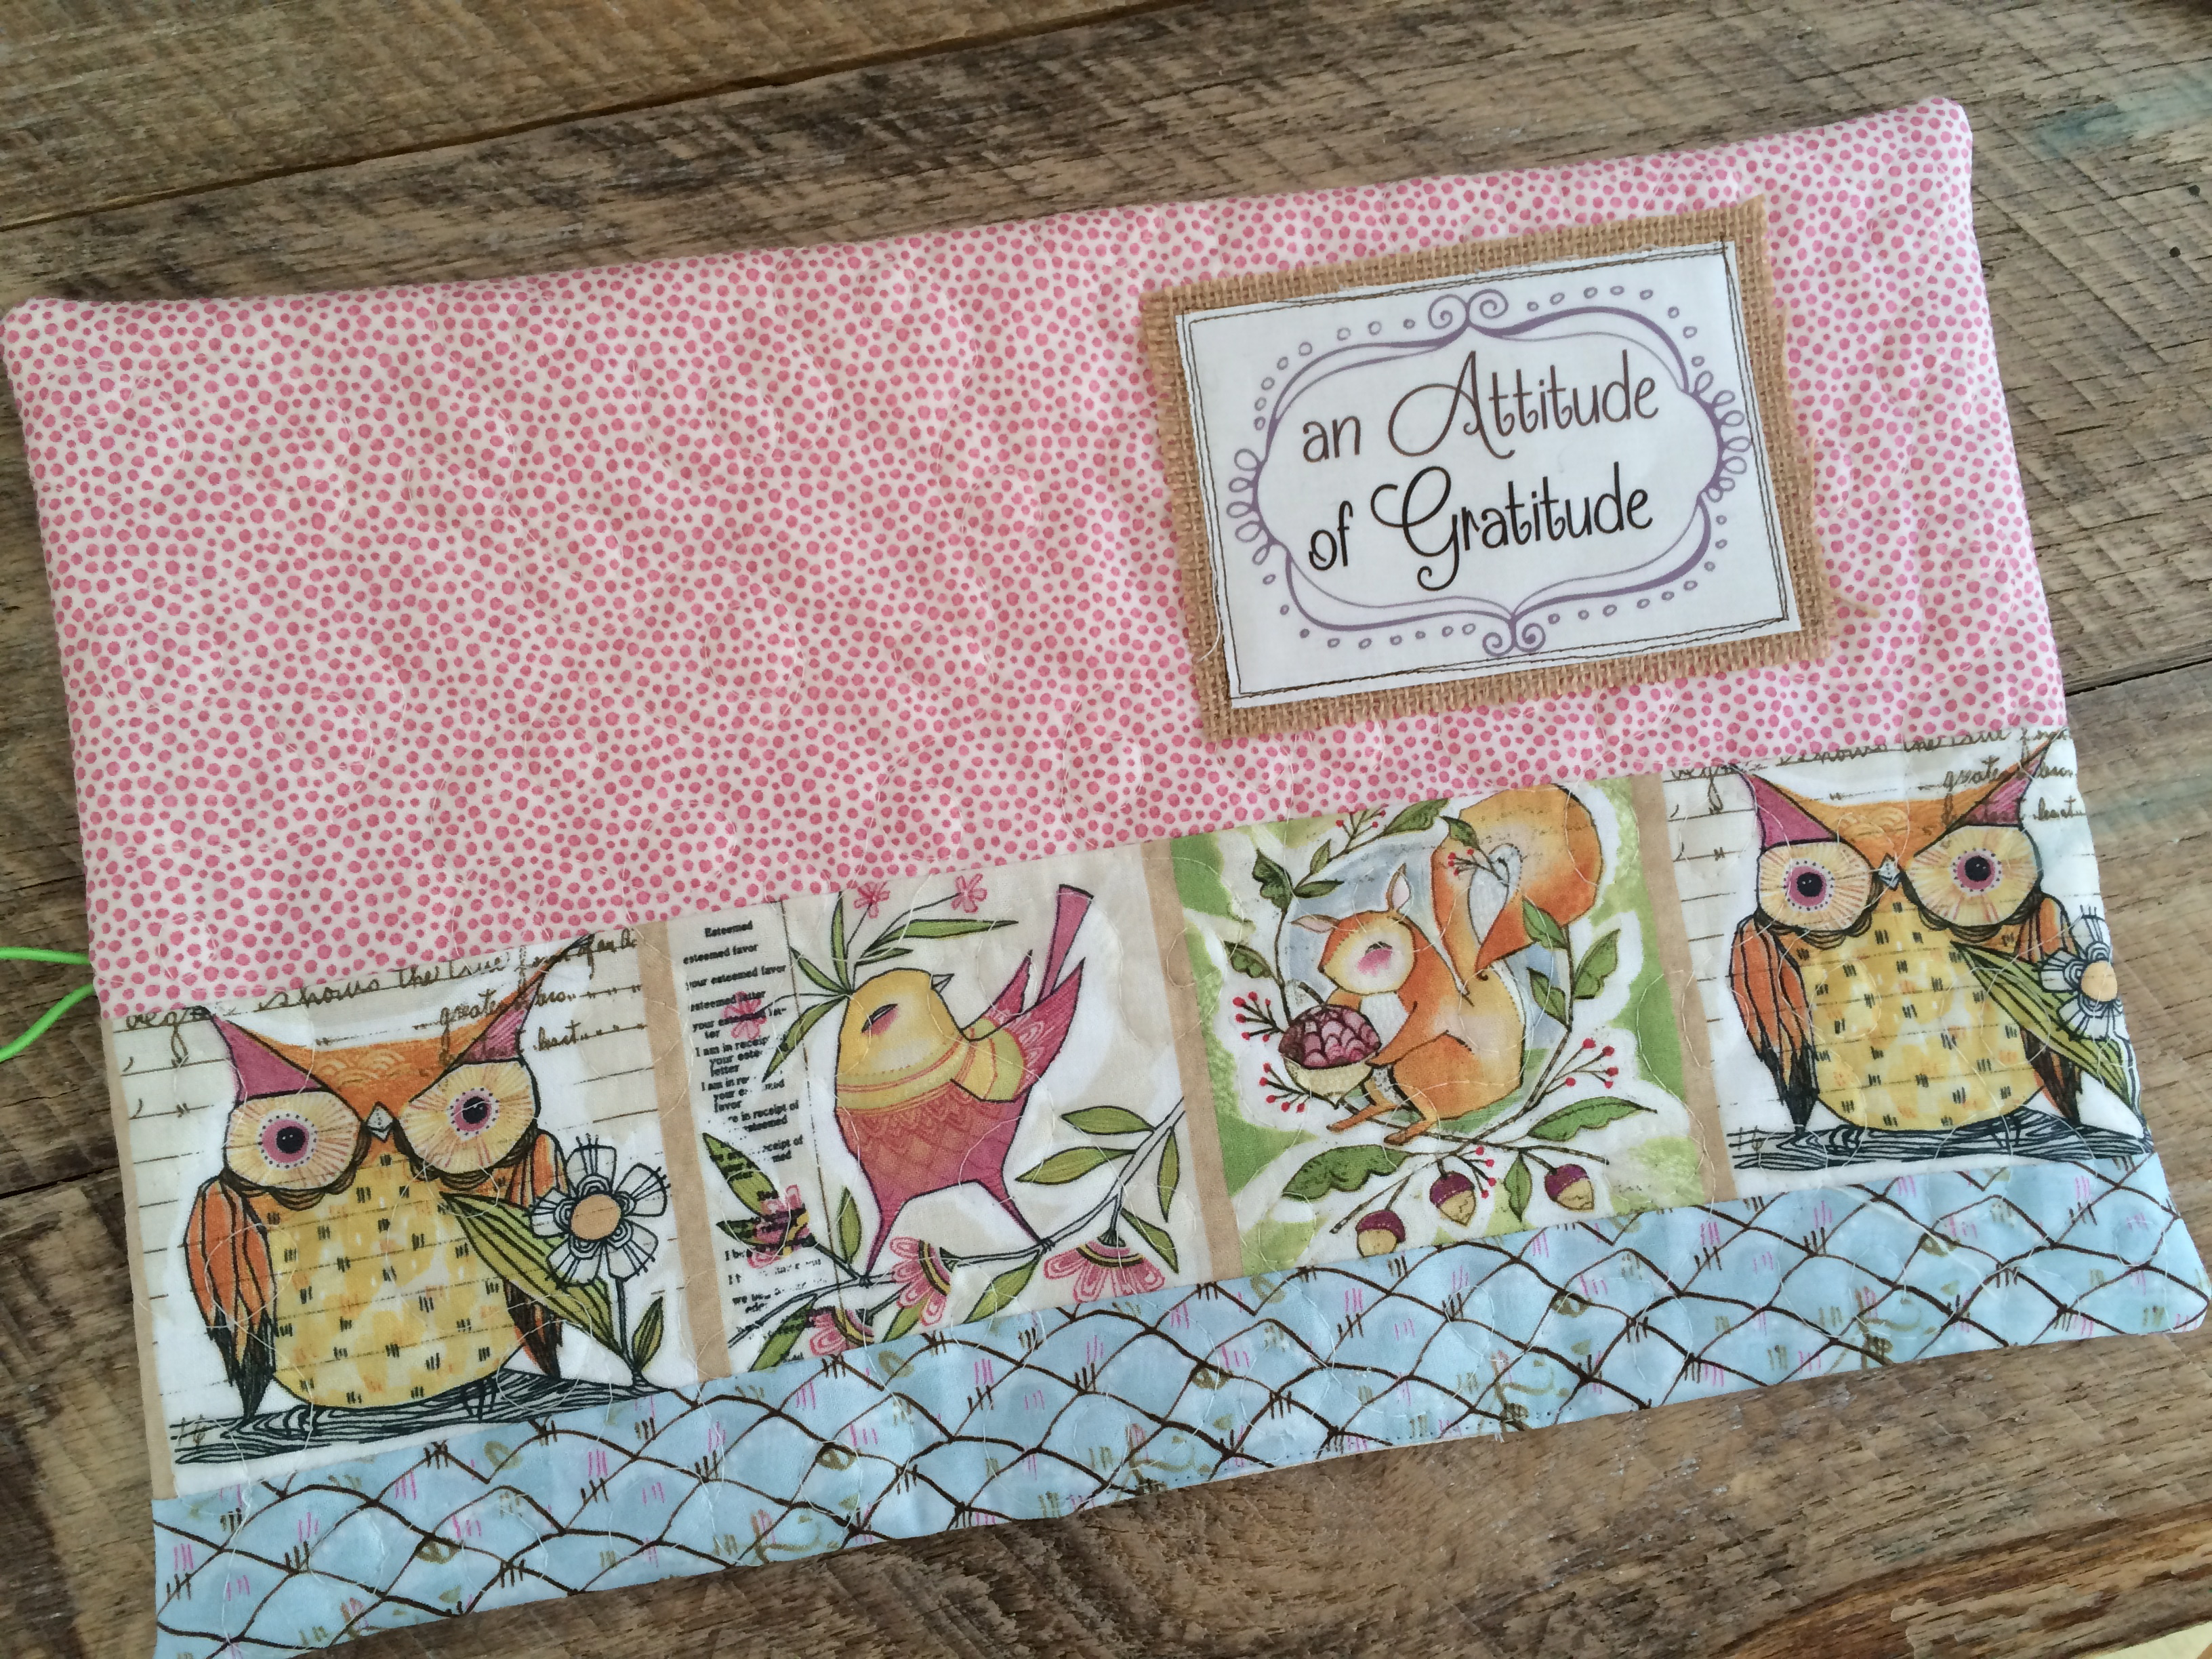 How To Make A Quilted Book Cover : An attitude of gratitude quilted journals